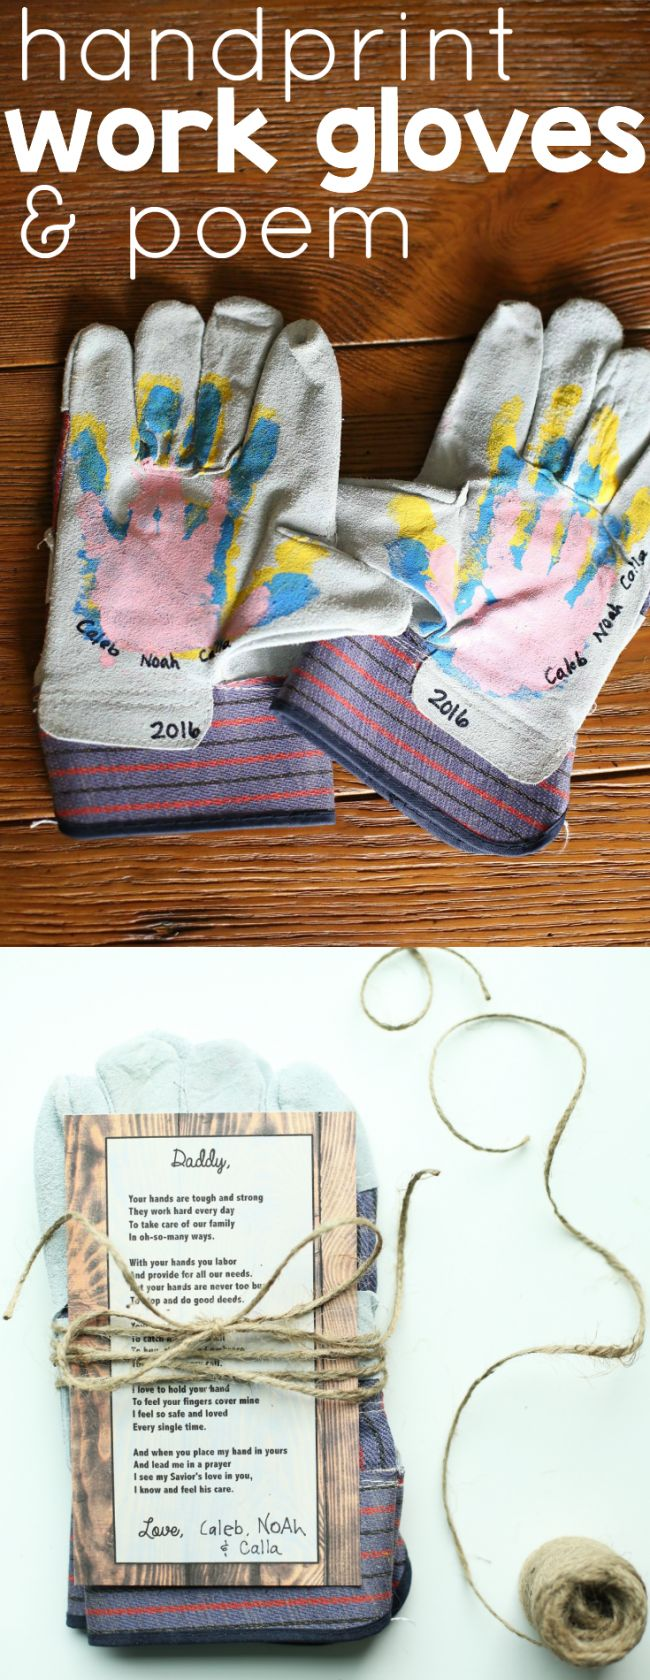 Handprint Work Gloves and Poem for Father's Day - cute idea! And useful!